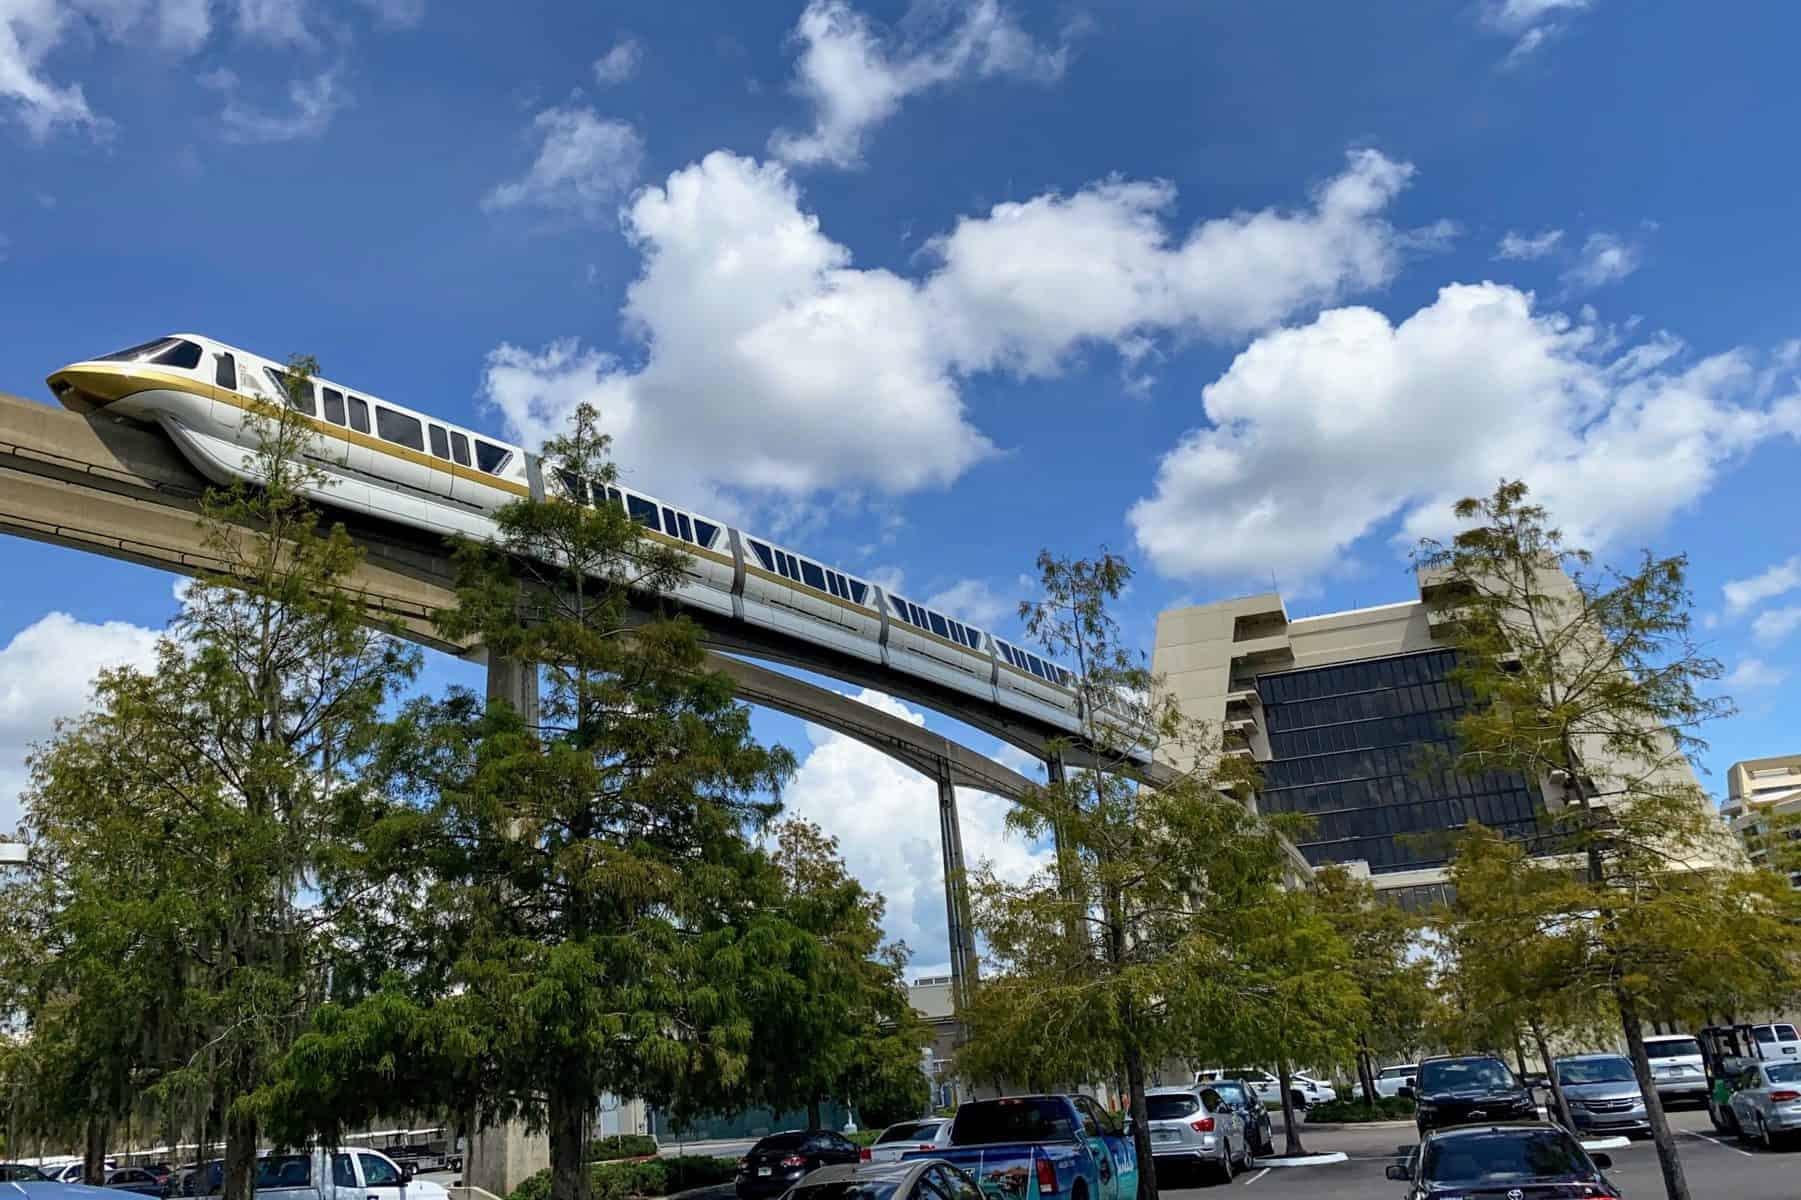 Monorail going into the Contemporary